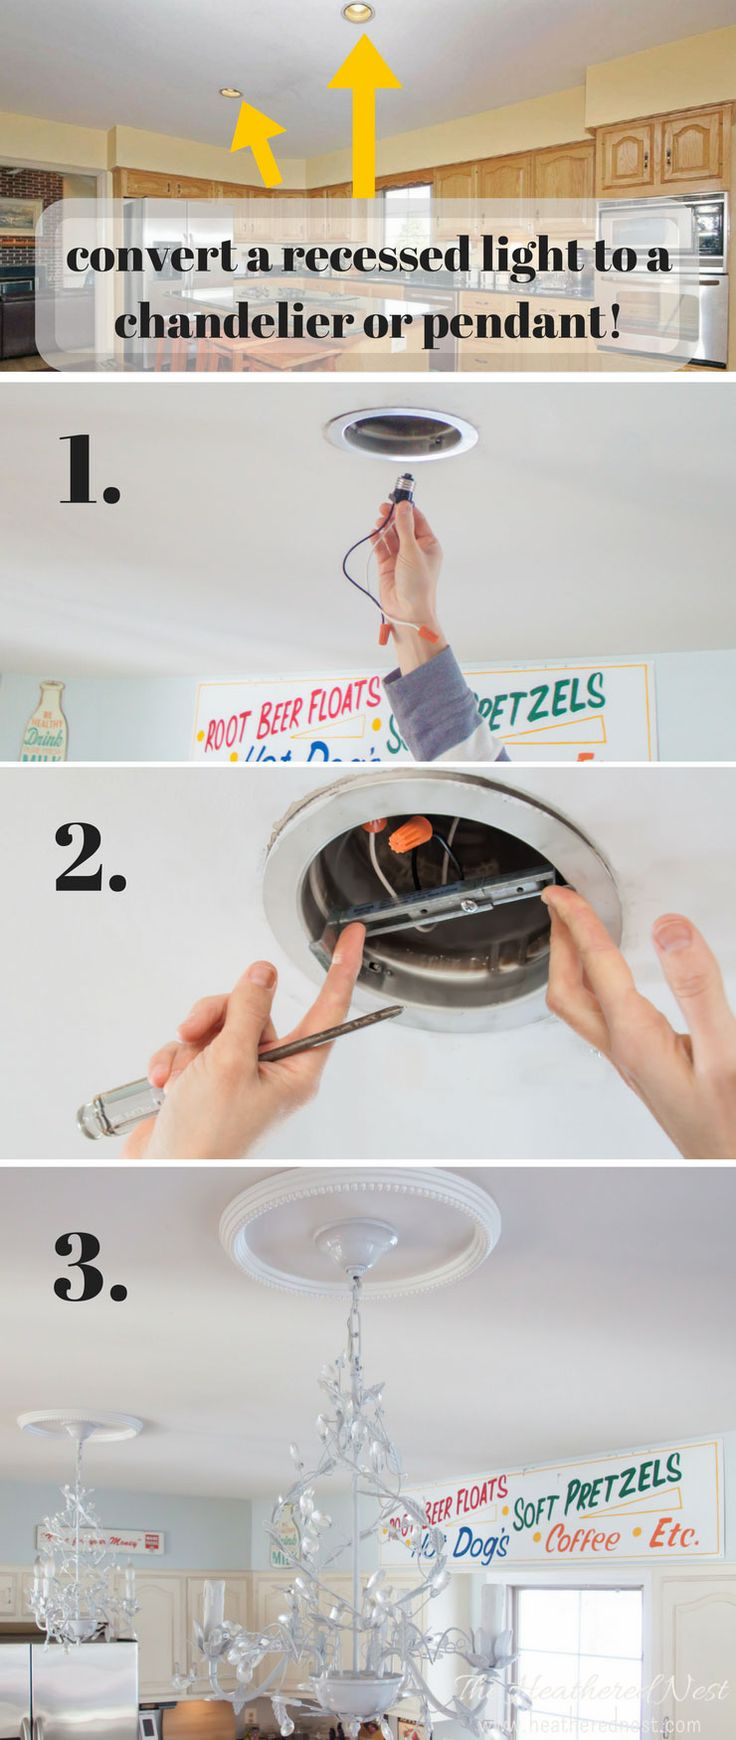 How to Change a Light Fixture using a Recessed Light Conversion Kit. AKA